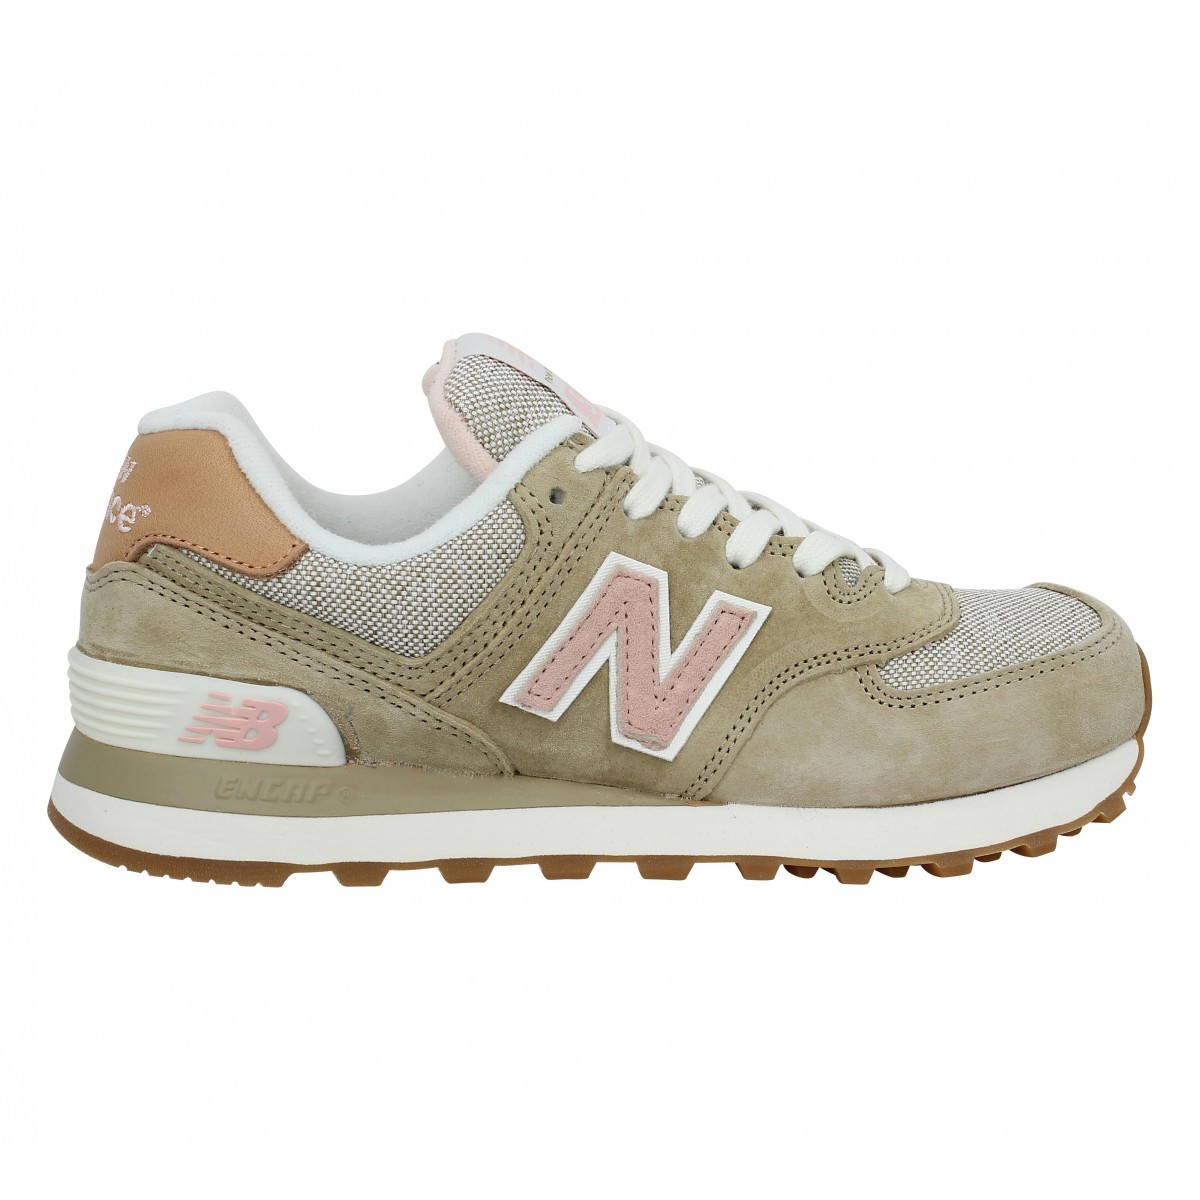 new balance 574 beige new balance dragon 574 or et noir et beige chaussures de marche pour femmes. Black Bedroom Furniture Sets. Home Design Ideas